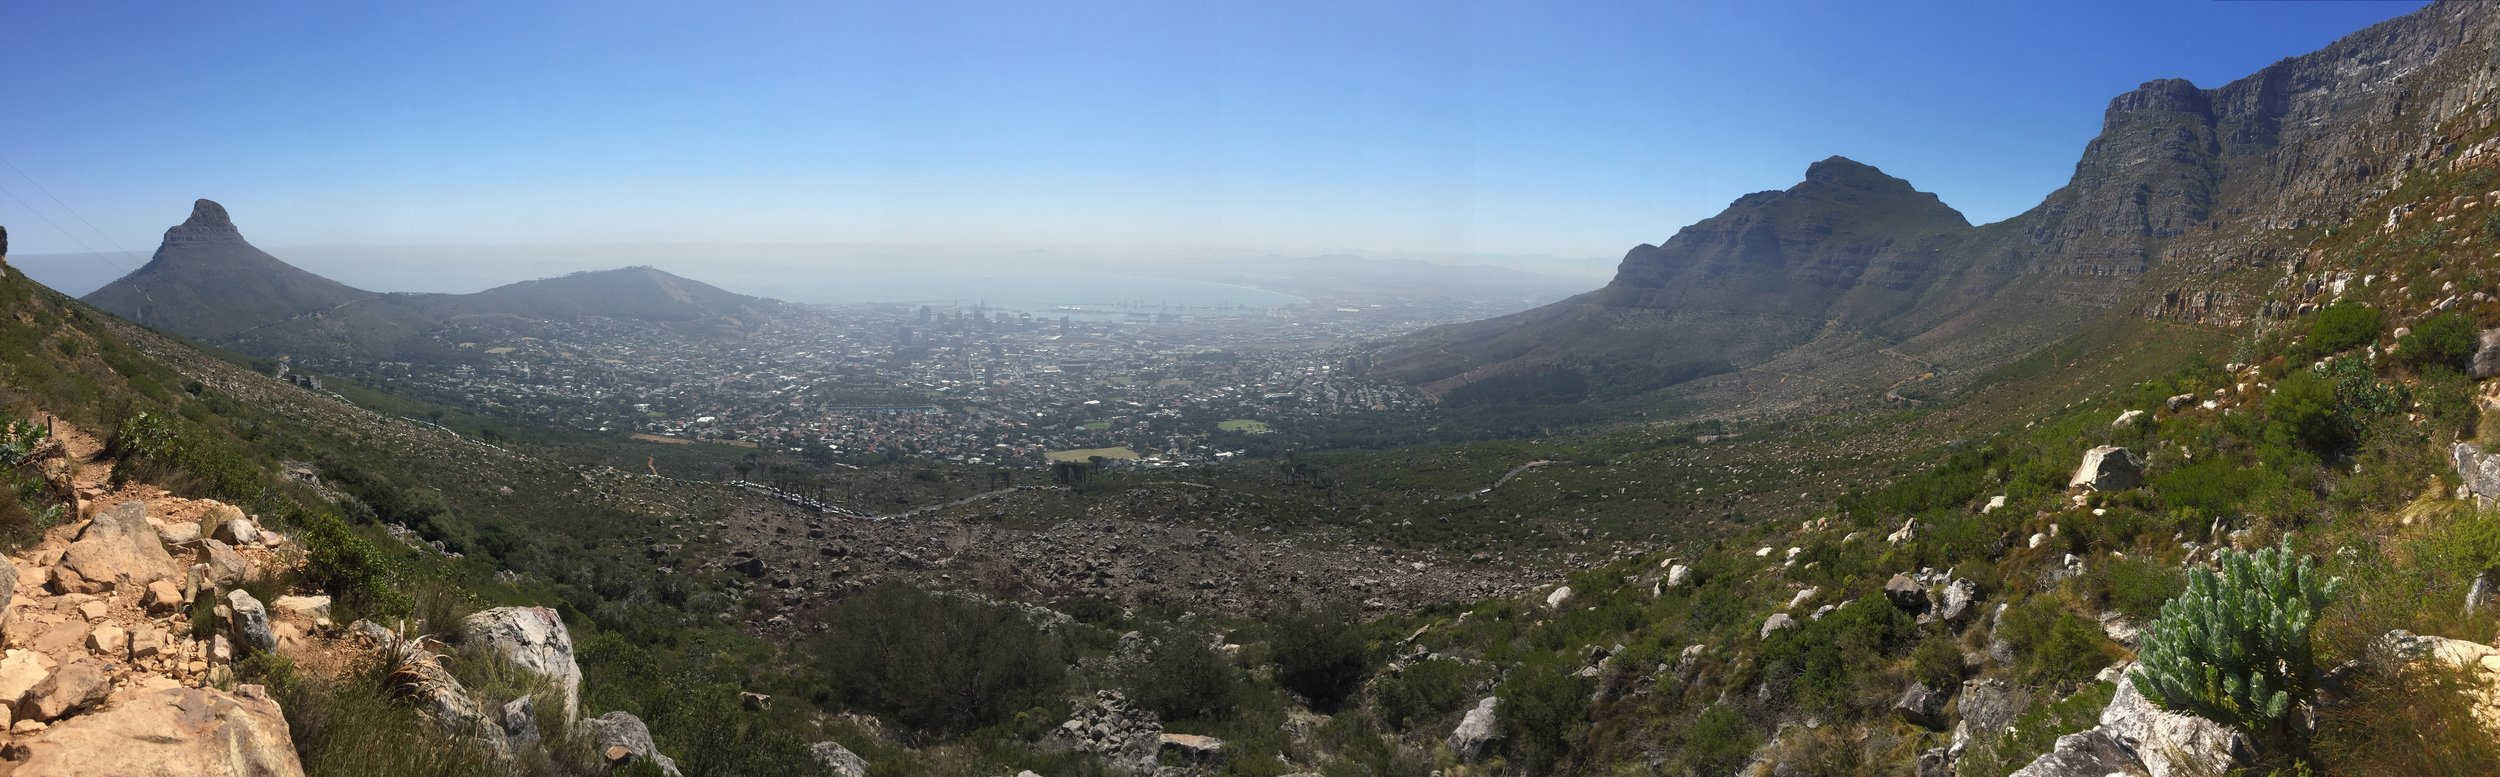 Hiking to the top of Table Mountain, overlooking Cape Town.